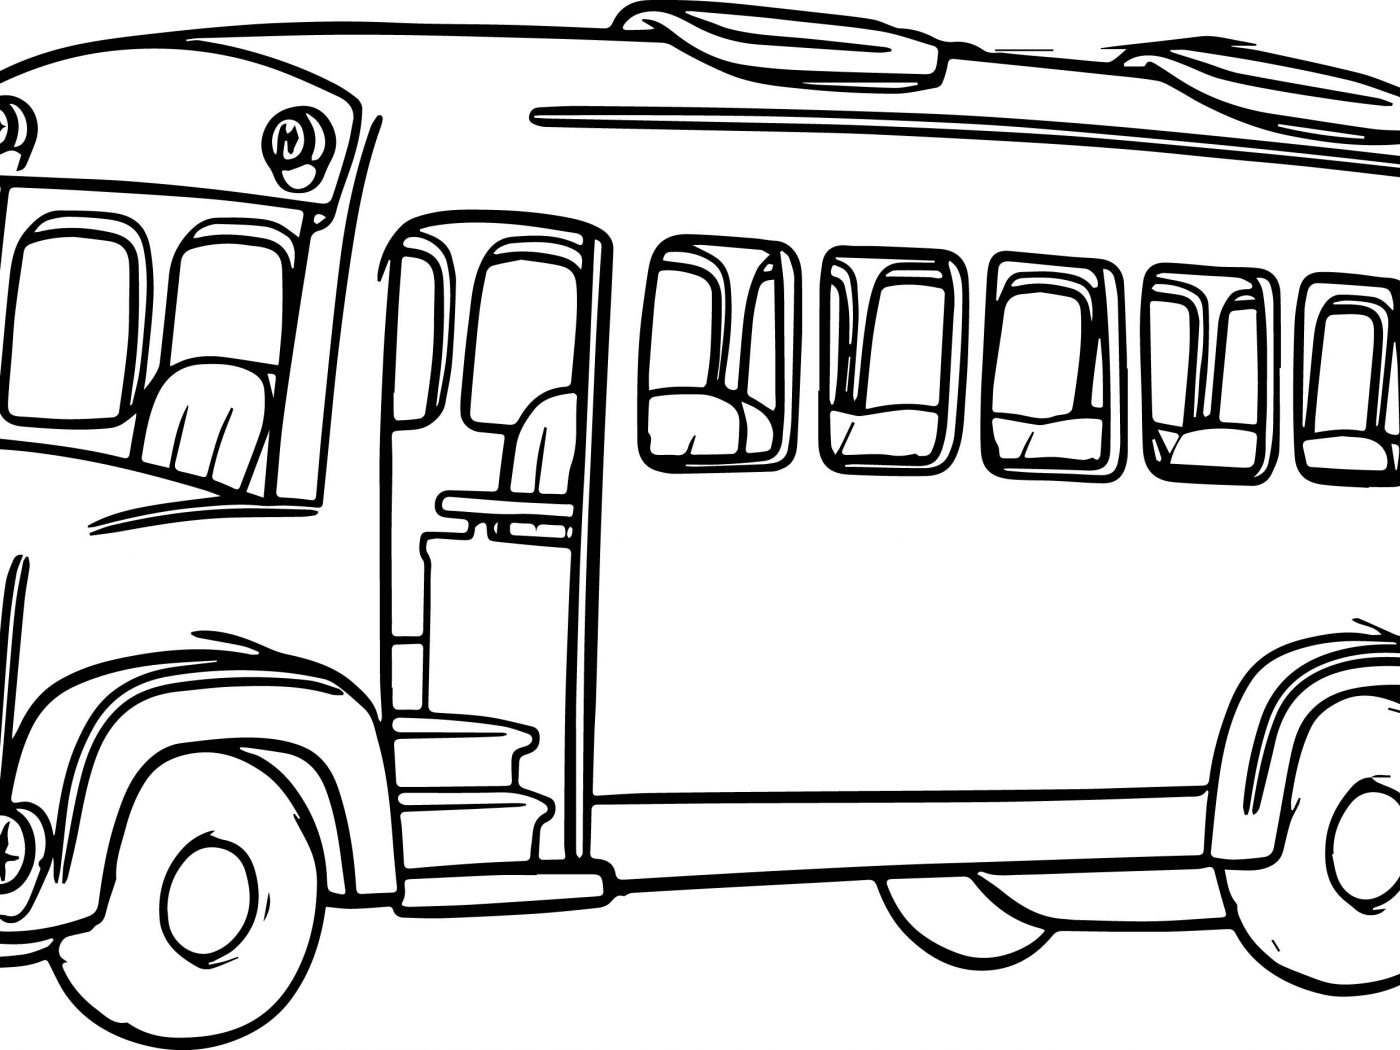 drawing of bus bus drawing images free download on clipartmag of bus drawing 1 1